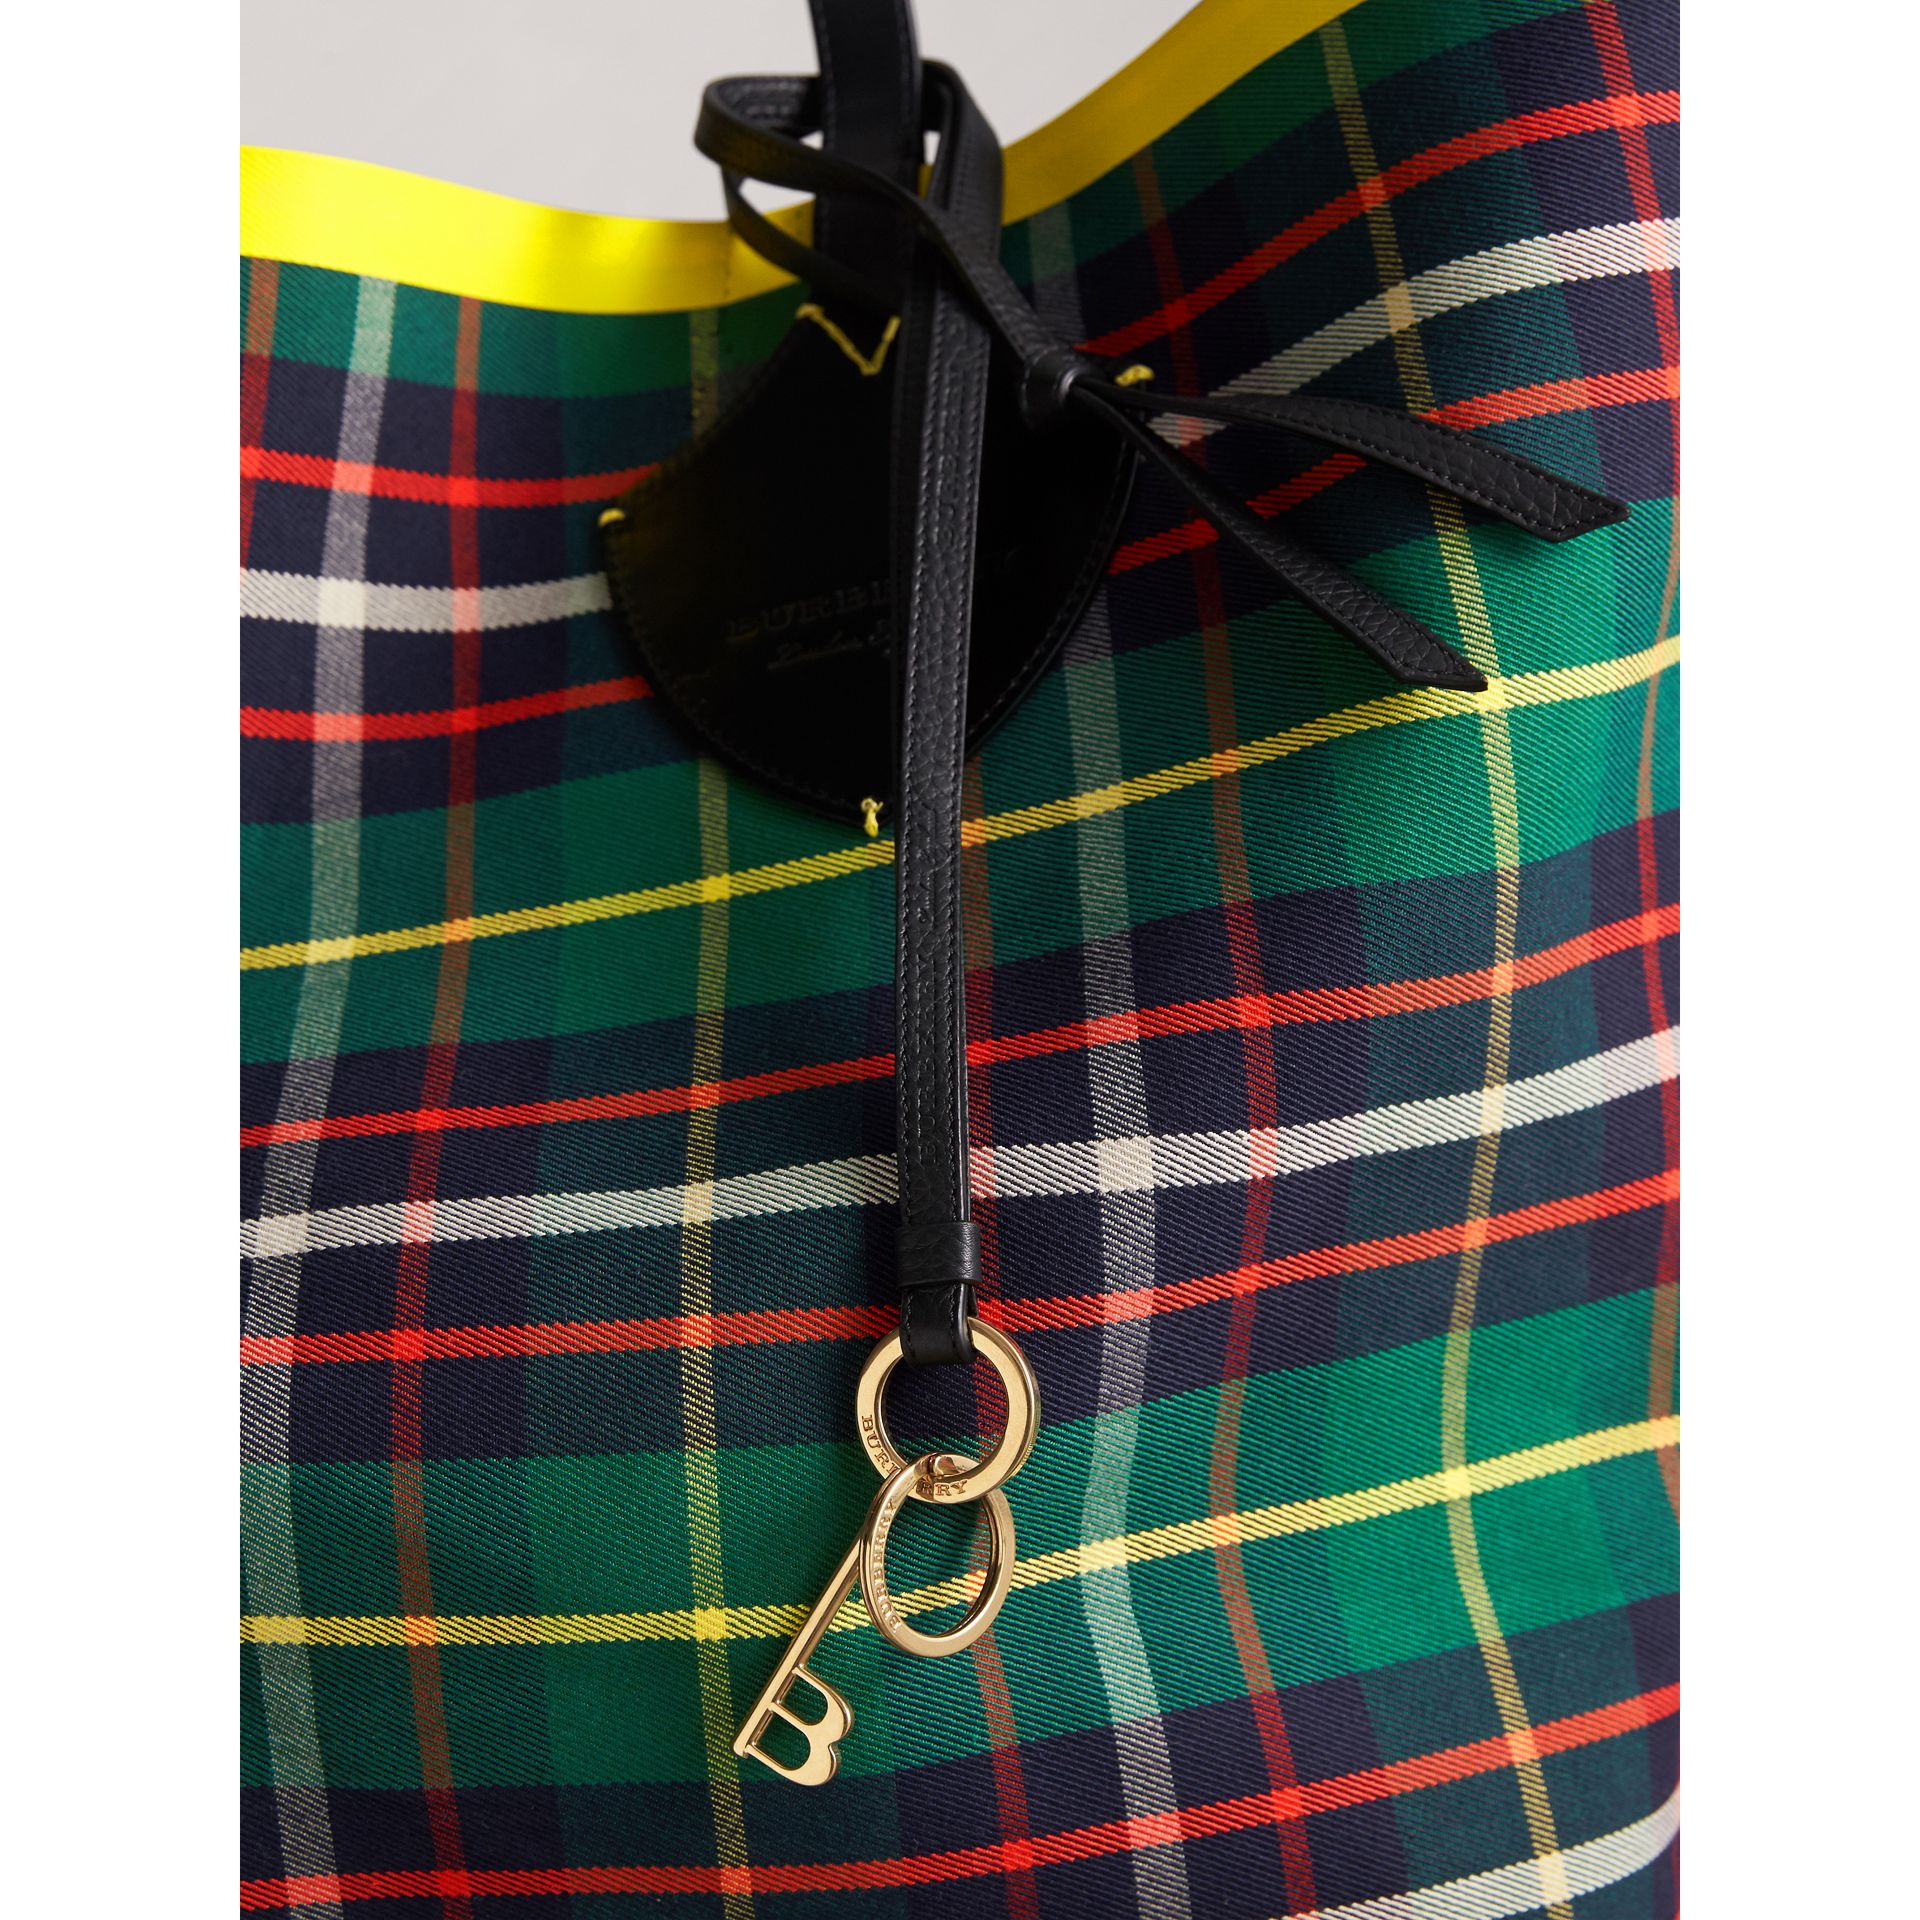 Burberry Motif Metal and Leather Strap Key Charm in Black - Women | Burberry - gallery image 3